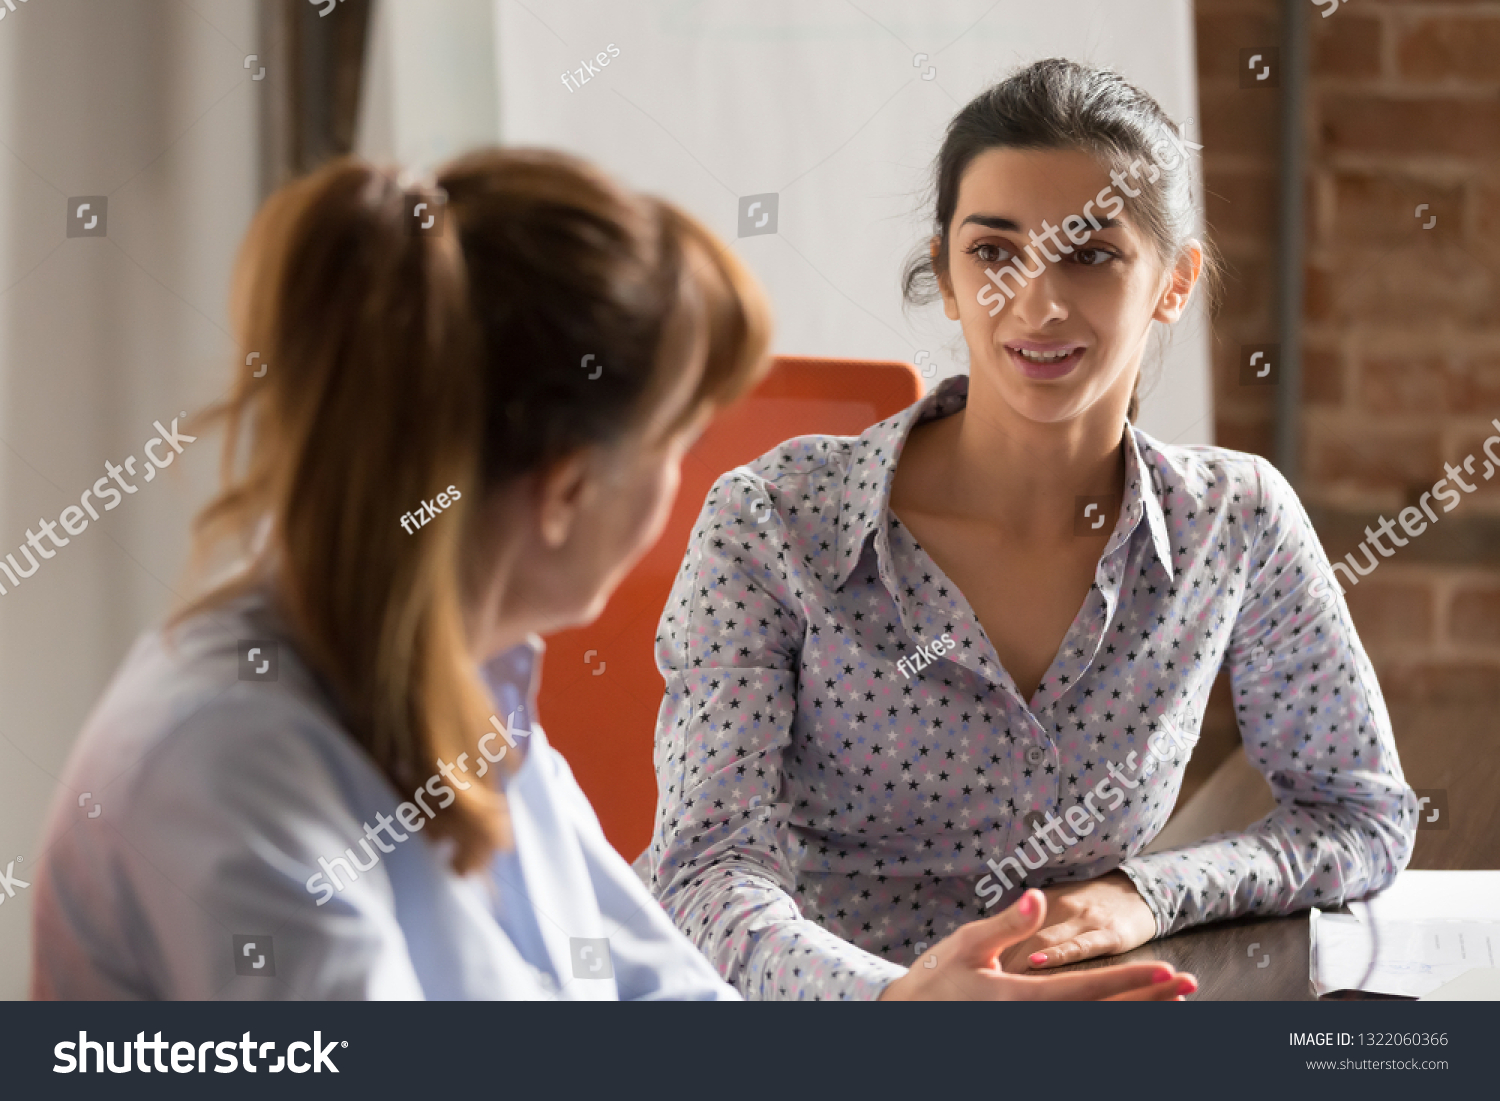 Indian businesswoman speaking to colleague or hr during job interview, young professional hindu woman manager consulting client or explaining giving advice teaching at business office meeting #1322060366